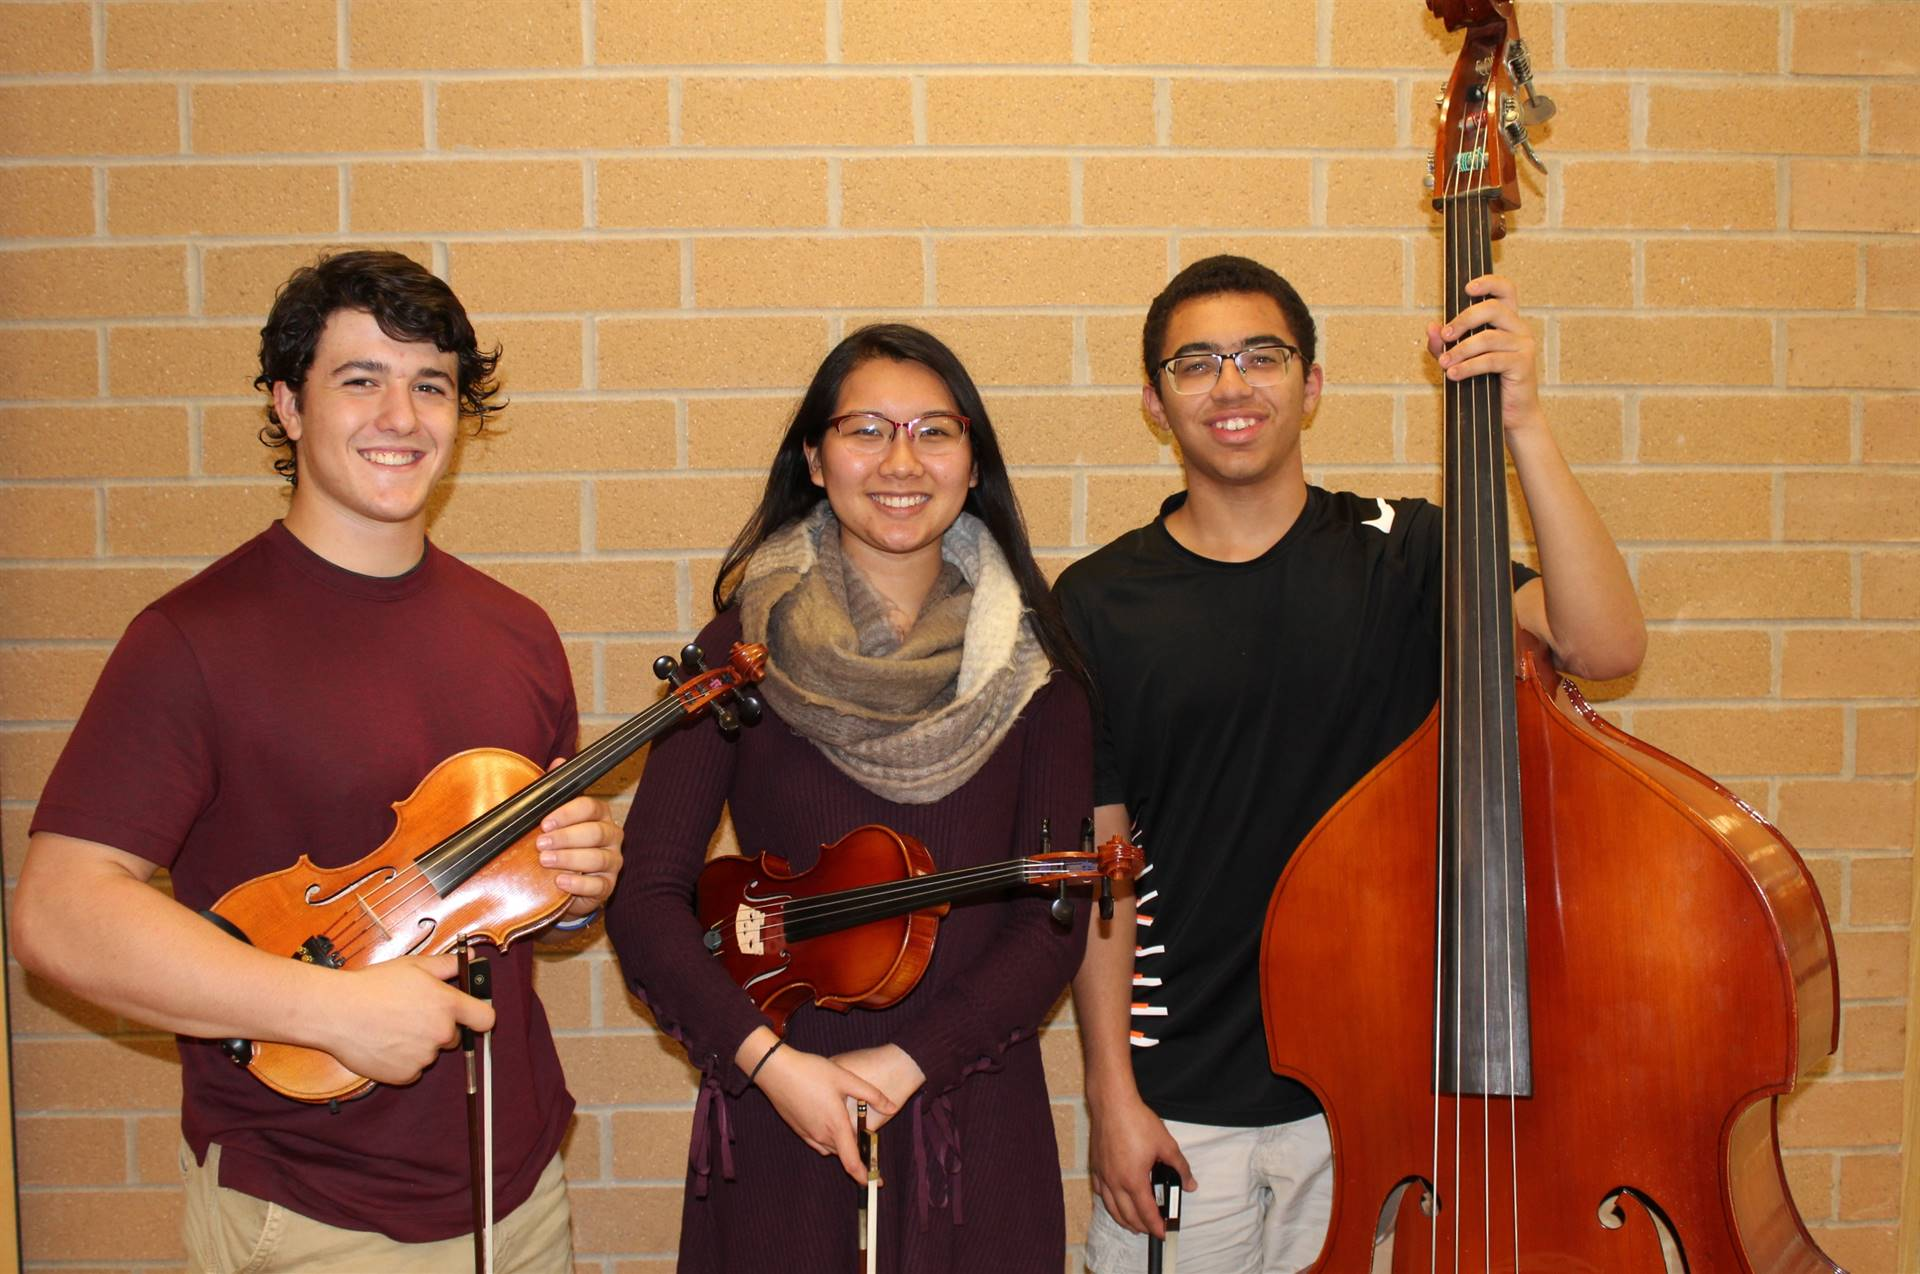 The three BPHS Honors Orchestra musicians